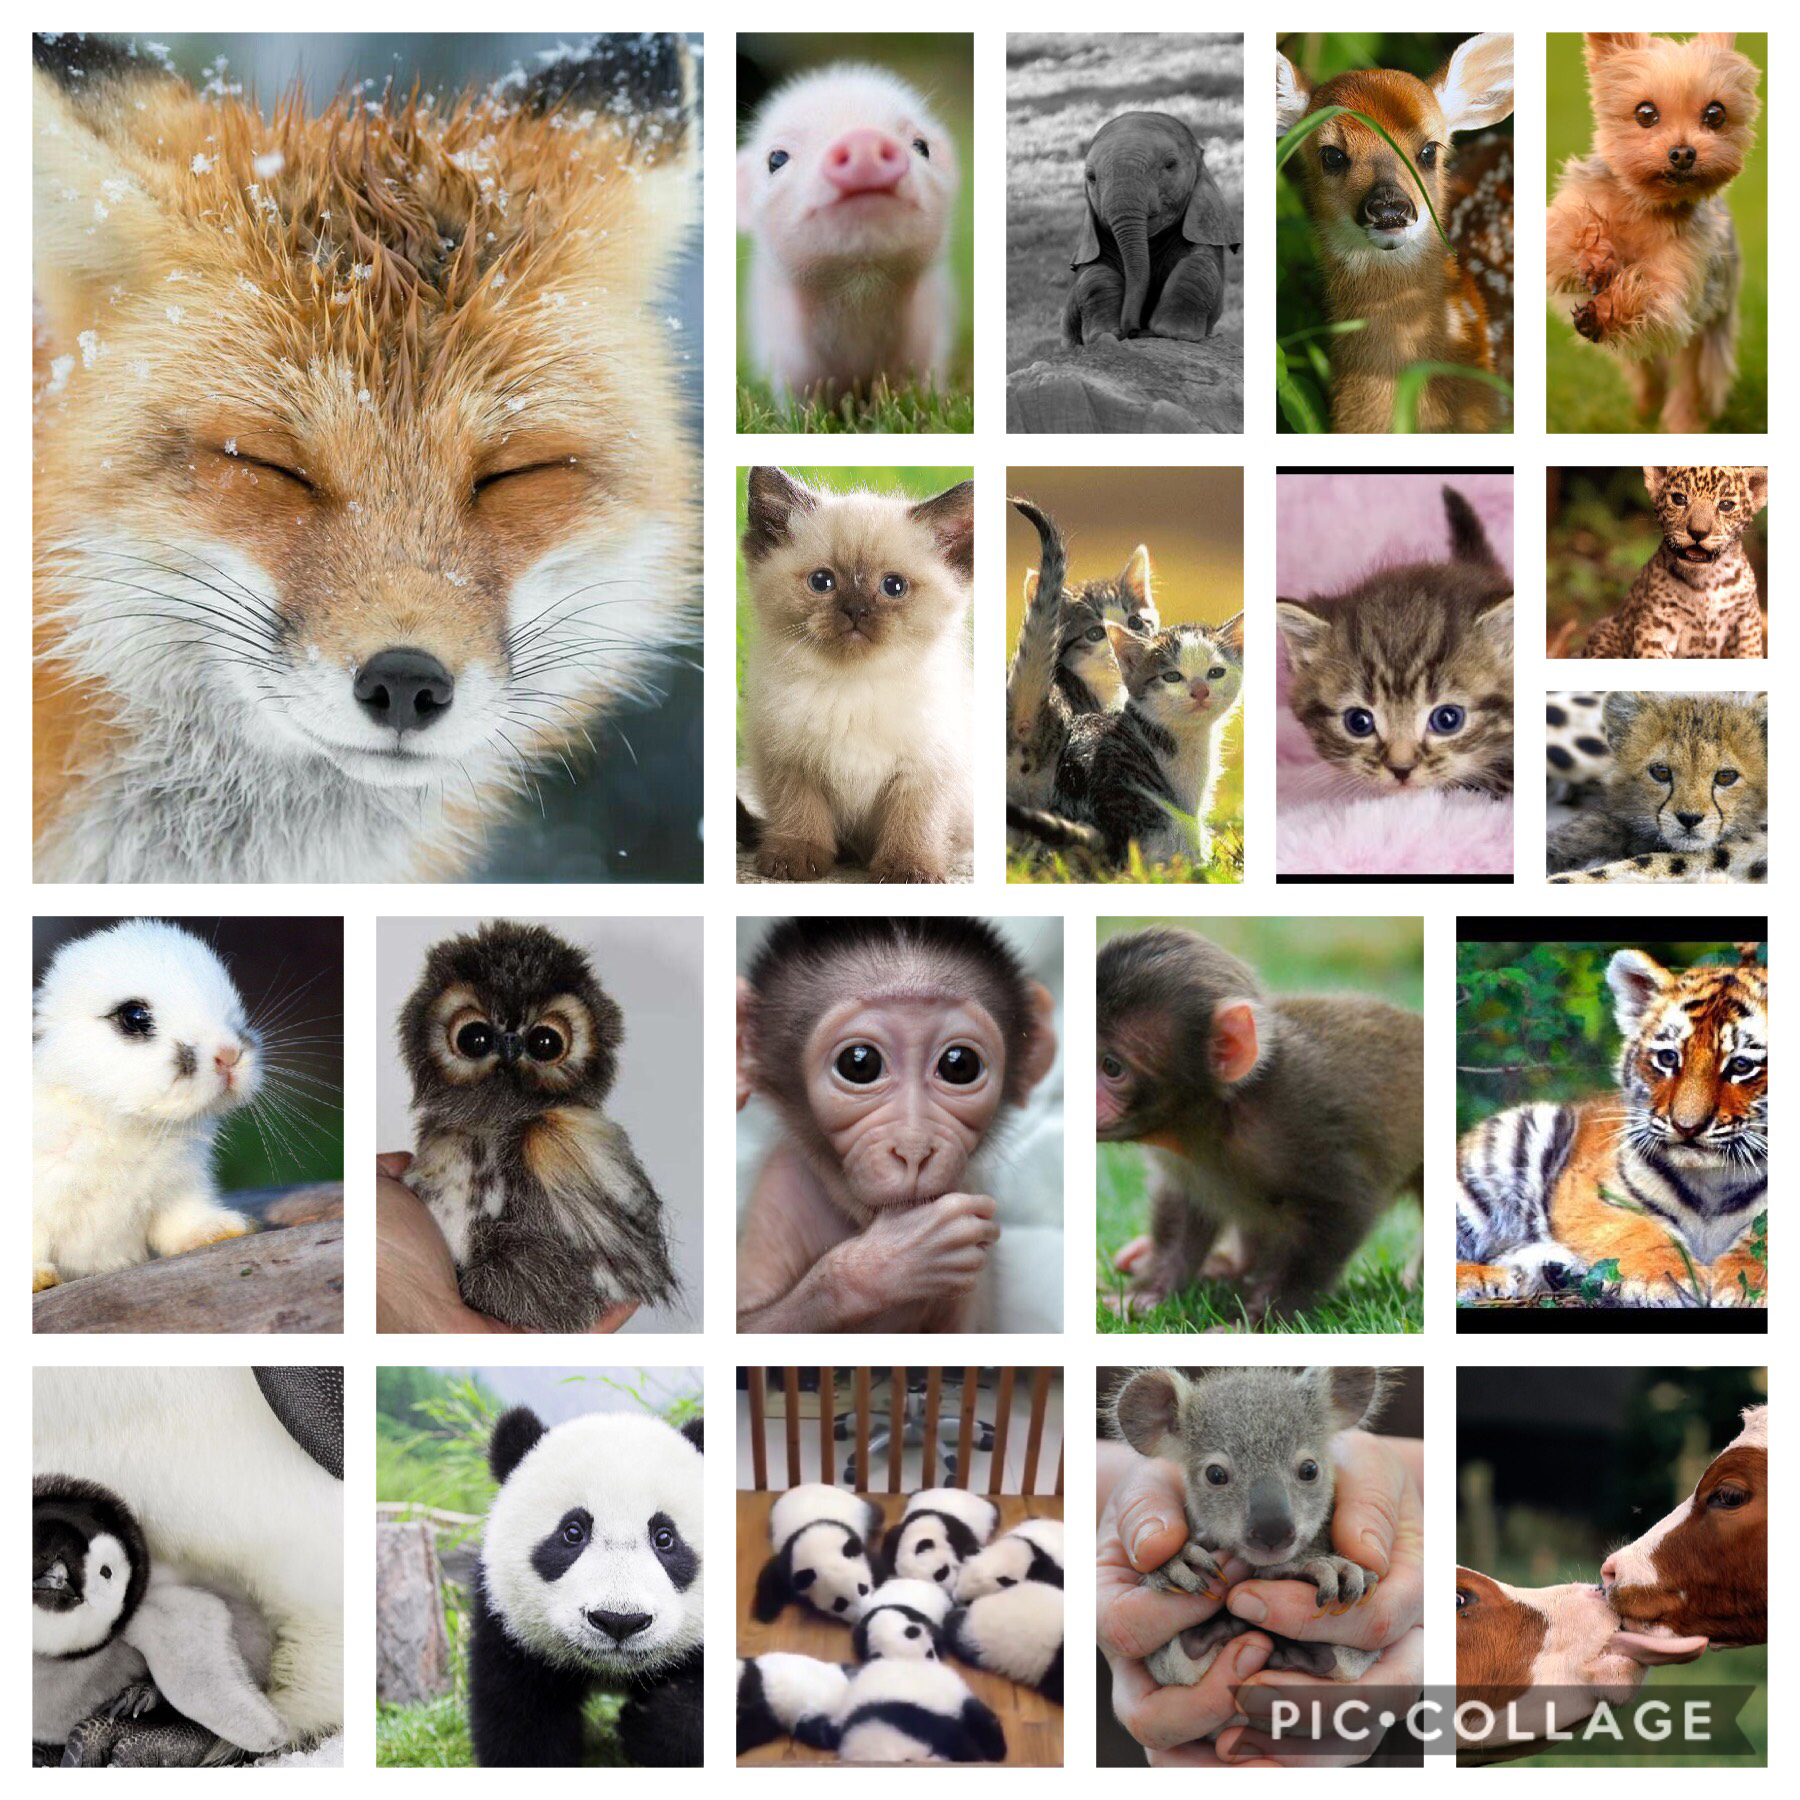 Tap🐶🦊🦁🐱🐼🐰🐨🐯🦁🐮🐷🐵🦉🐘     Witch is your favourite animal out on these  Mine is the fox and the elephant Tap again     What is your favourite animal of all time Mine is an elephant